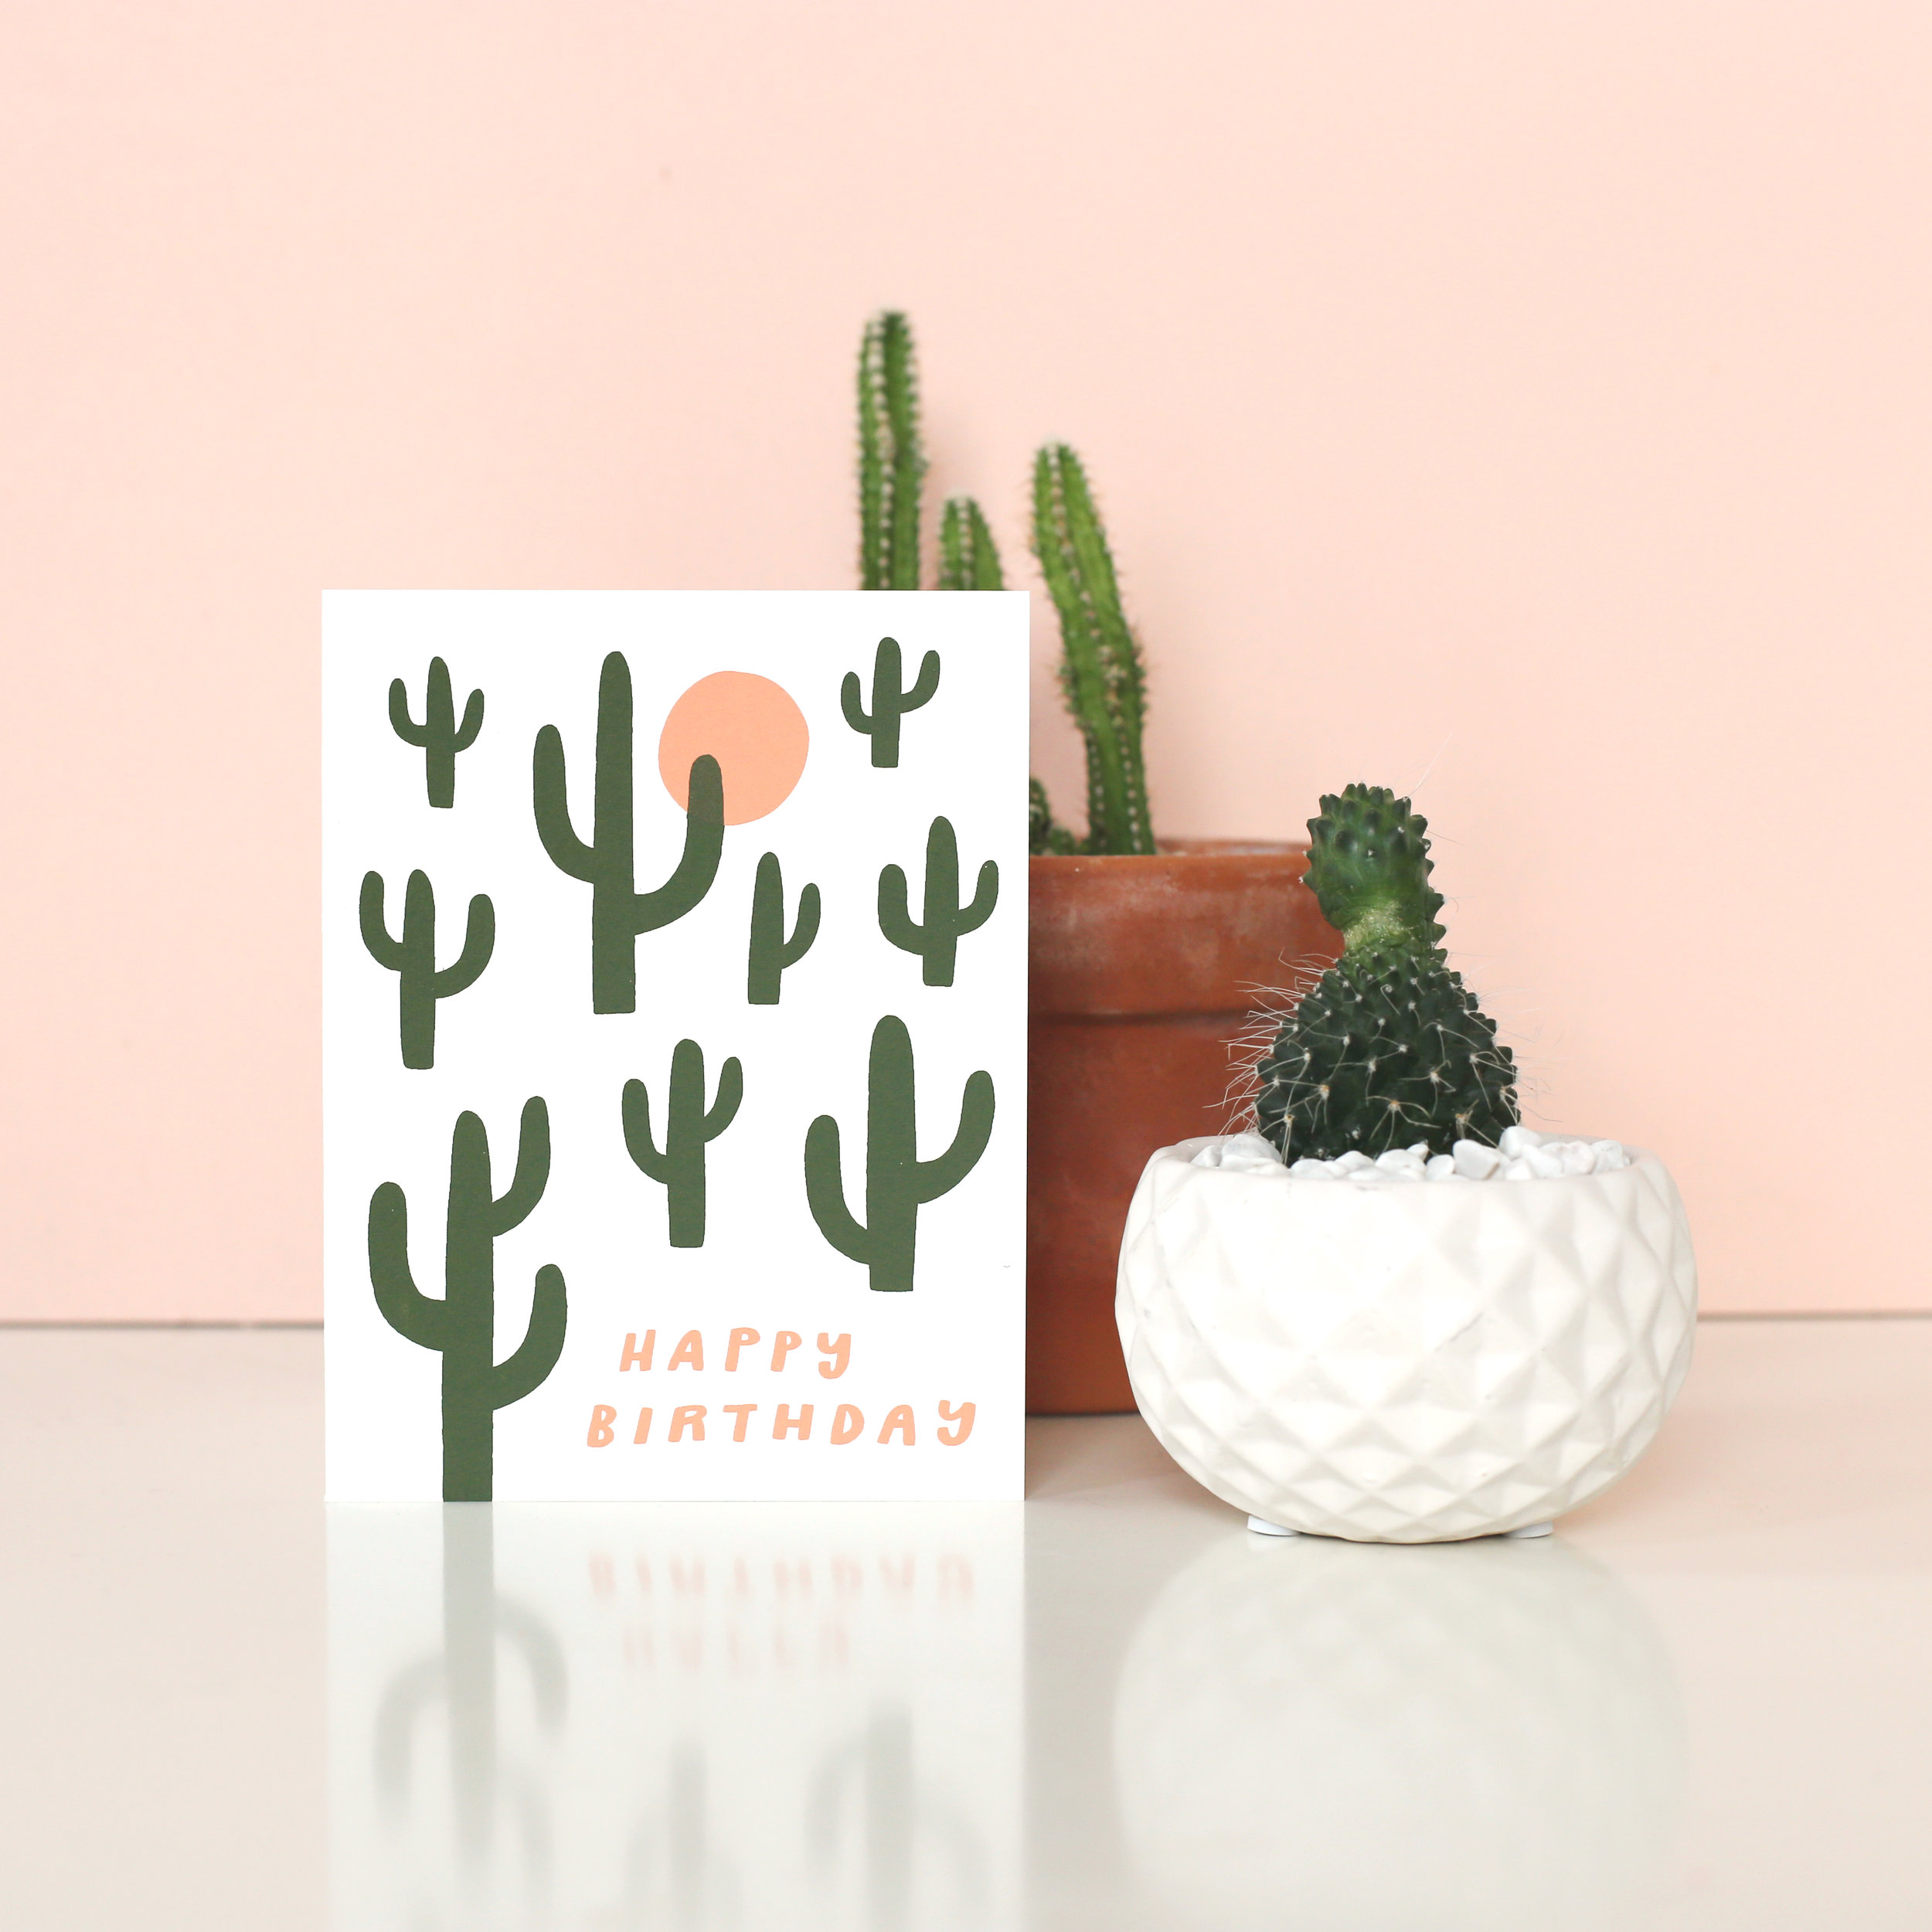 Worthwhile Paper  is a collection of screen printed paper goods for lovers of nature, magic and meaningful design. For the sample sale, they will be bringing current styles of cards, prints, pins and notebooks with ever-so-slight imperfections, as well as discontinued styles, all at a much lower cost.